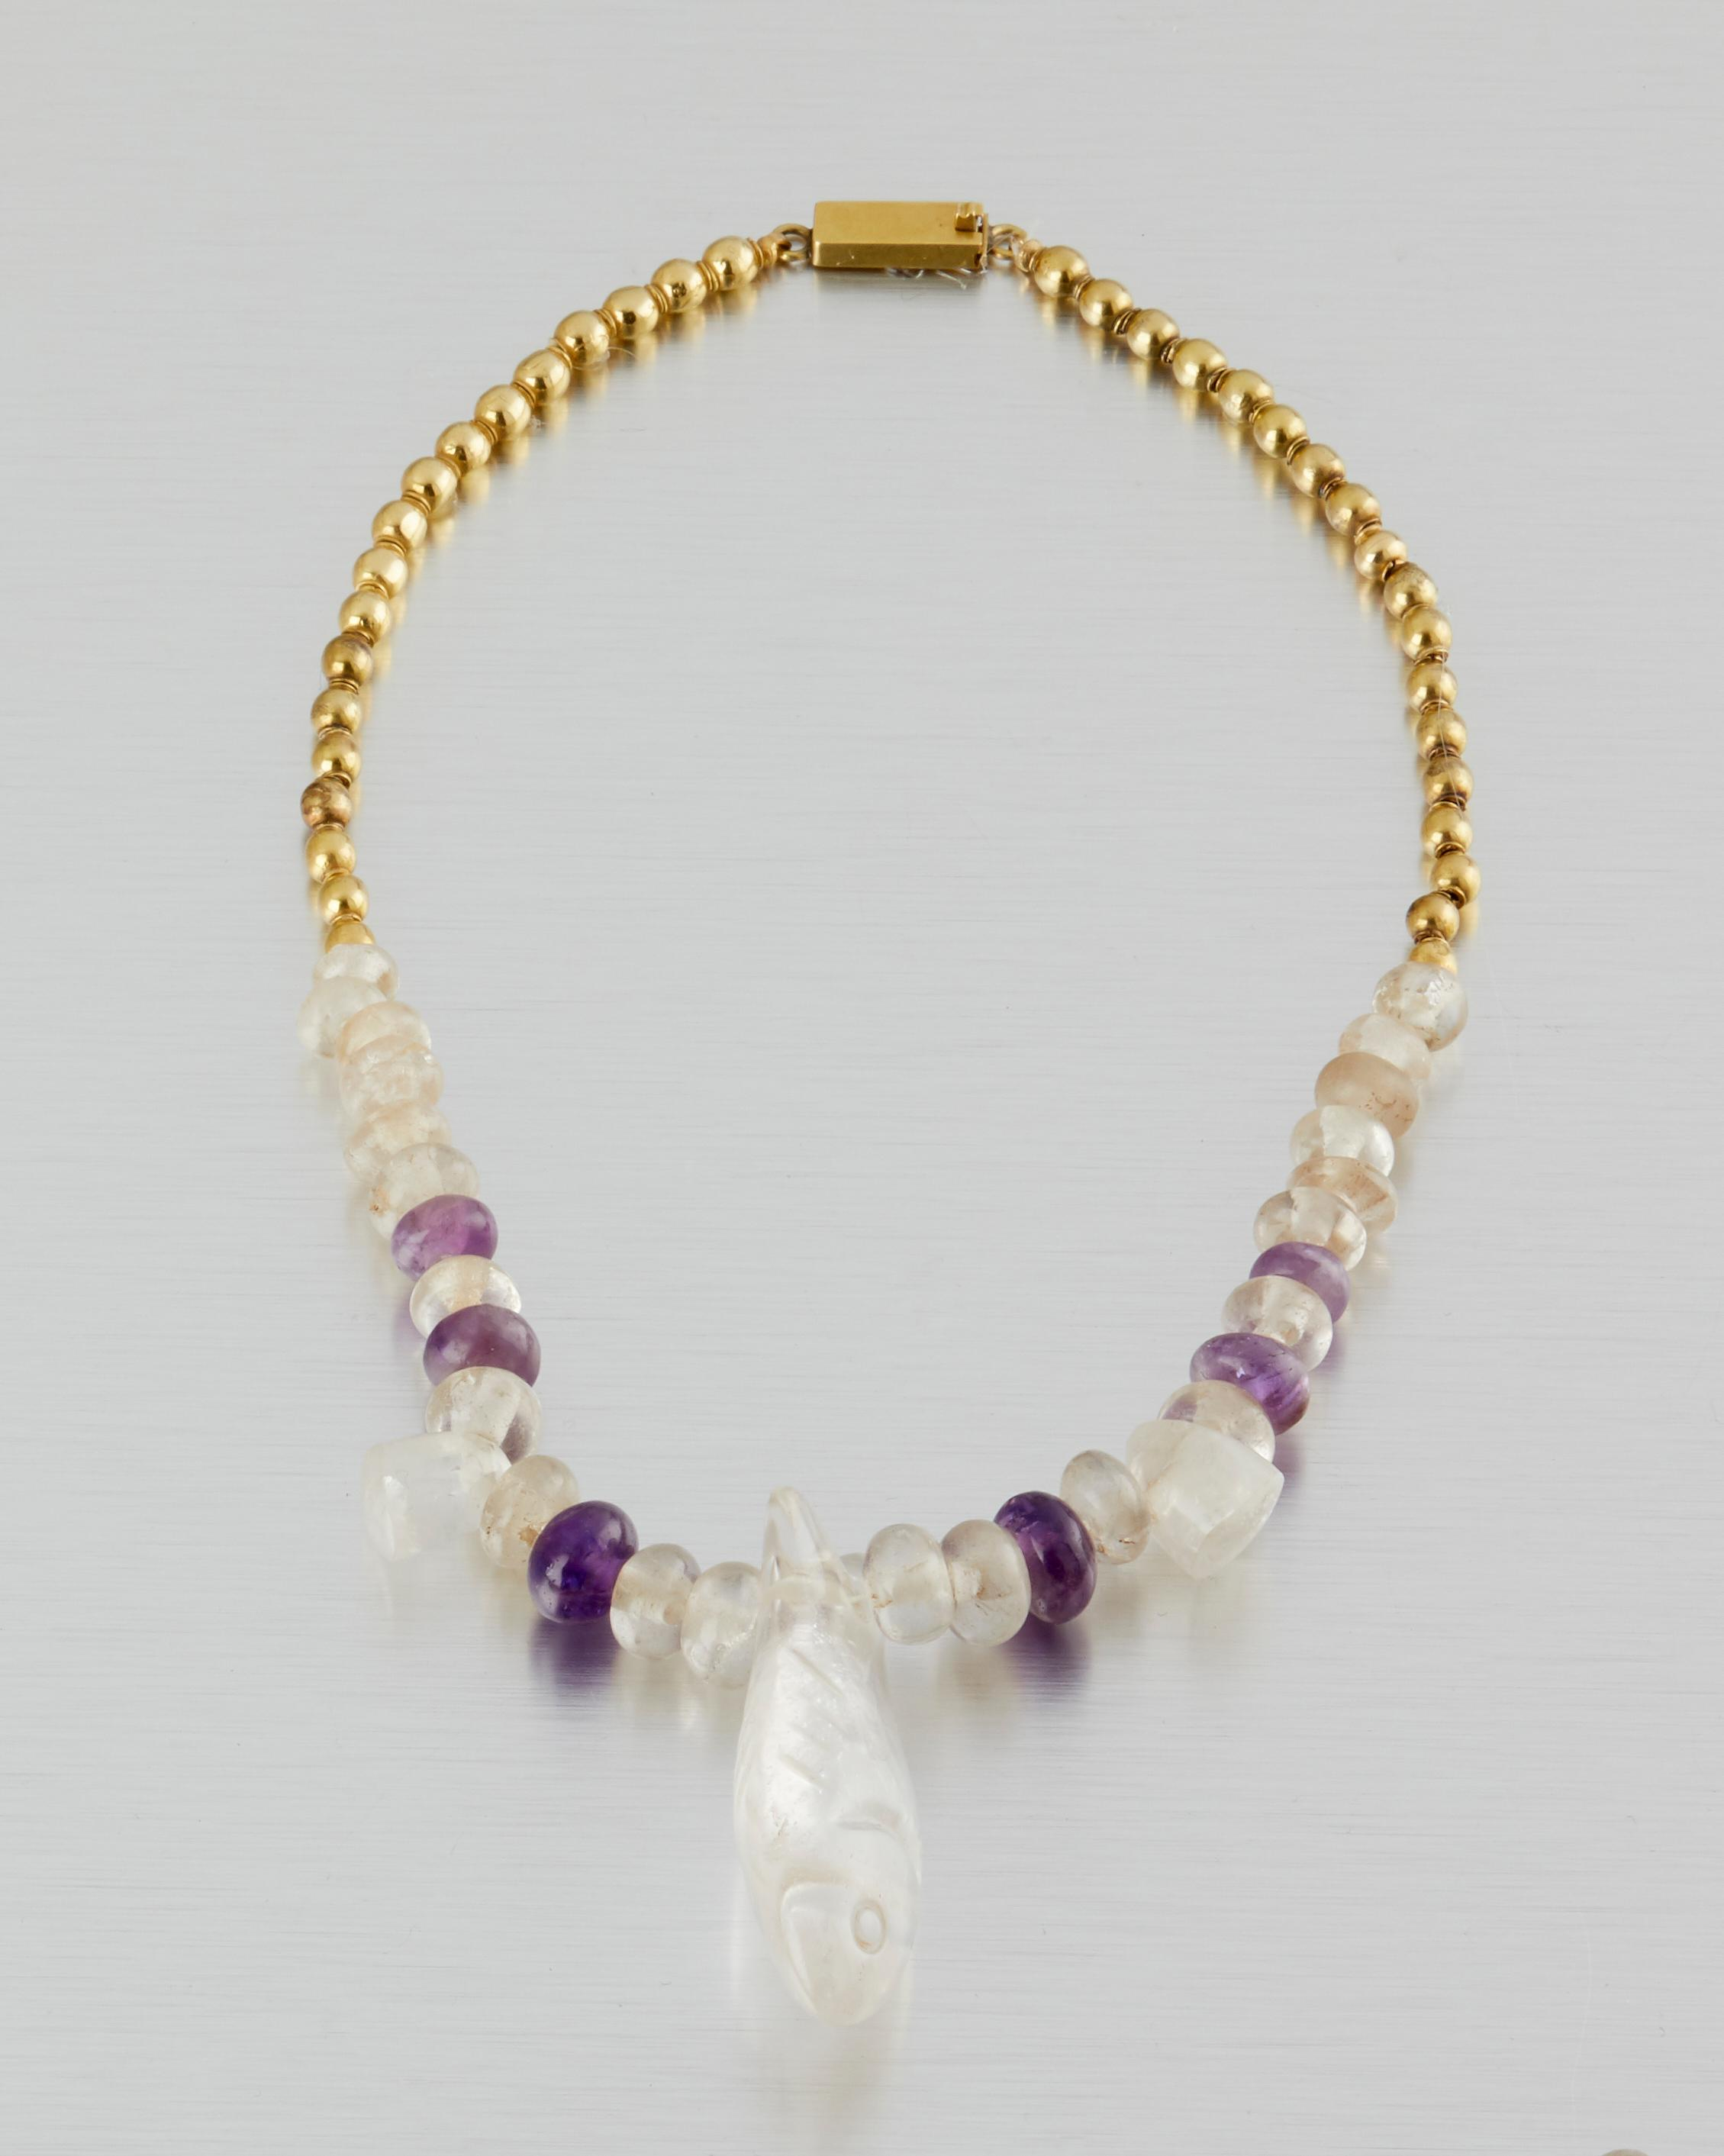 A William Spratling 18k gold Pre-Columbian beaded necklace